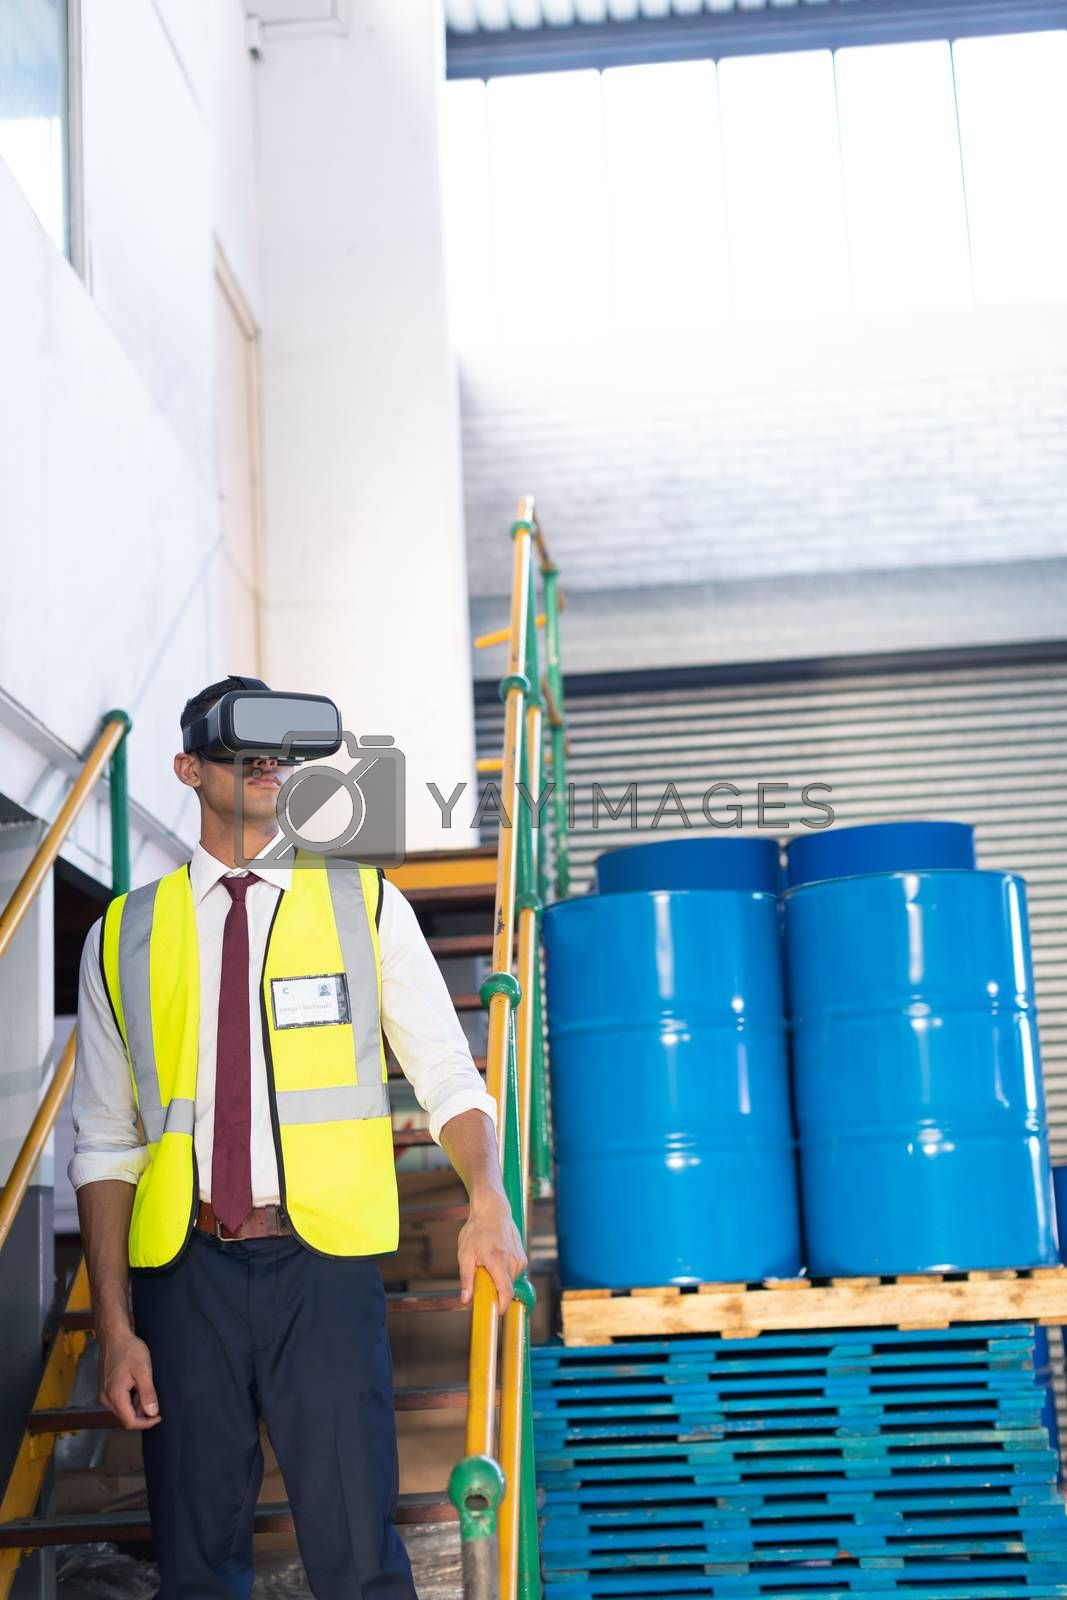 Front view of young Caucasian male supervisor using virtual reality headset in warehouse. This is a freight transportation and distribution warehouse. Industrial and industrial workers concept